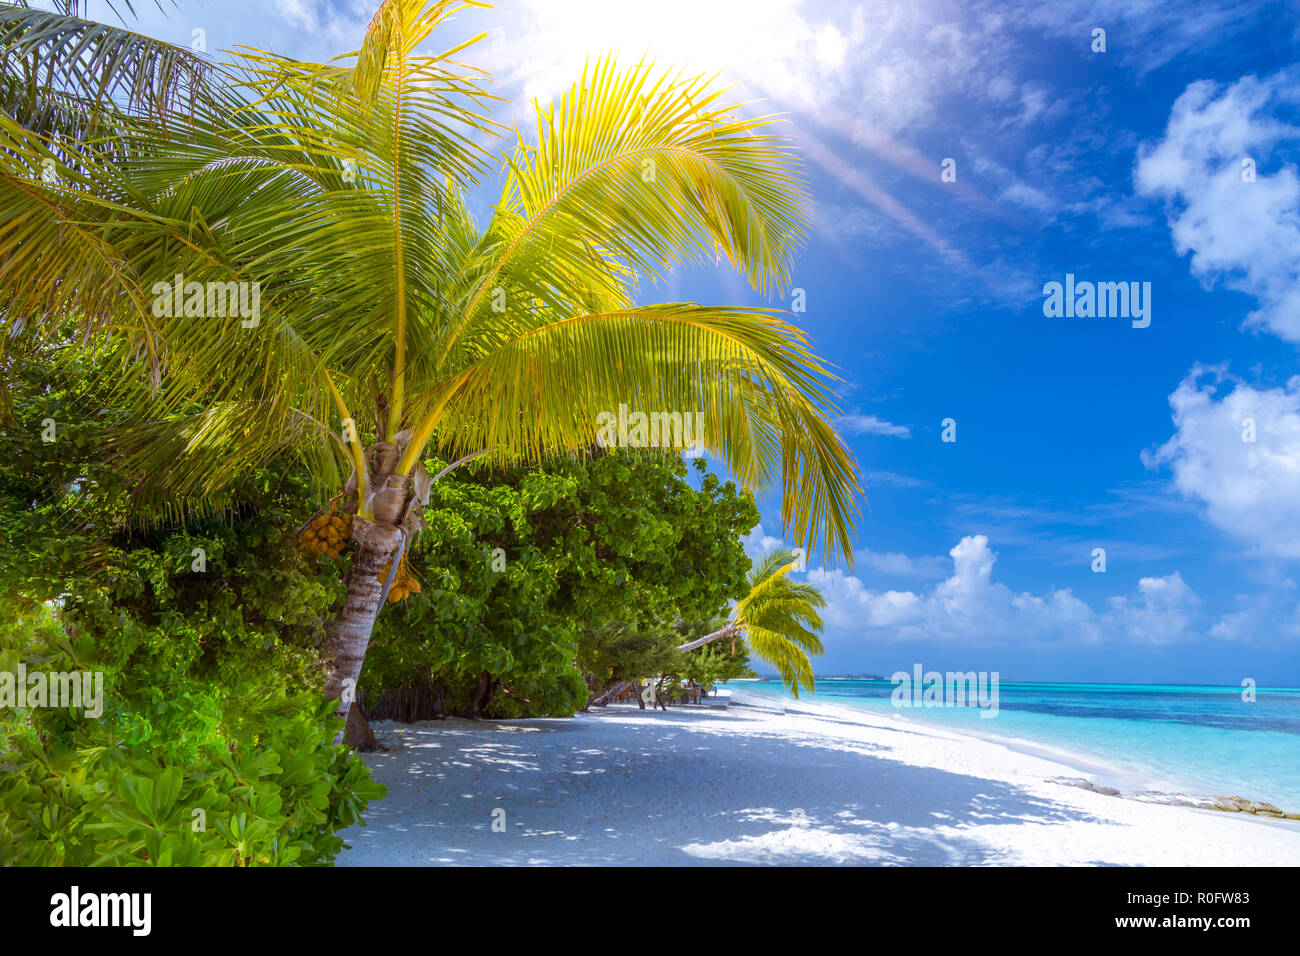 Tranquil Beach Scene Exotic Tropical Beach Resort Landscape For